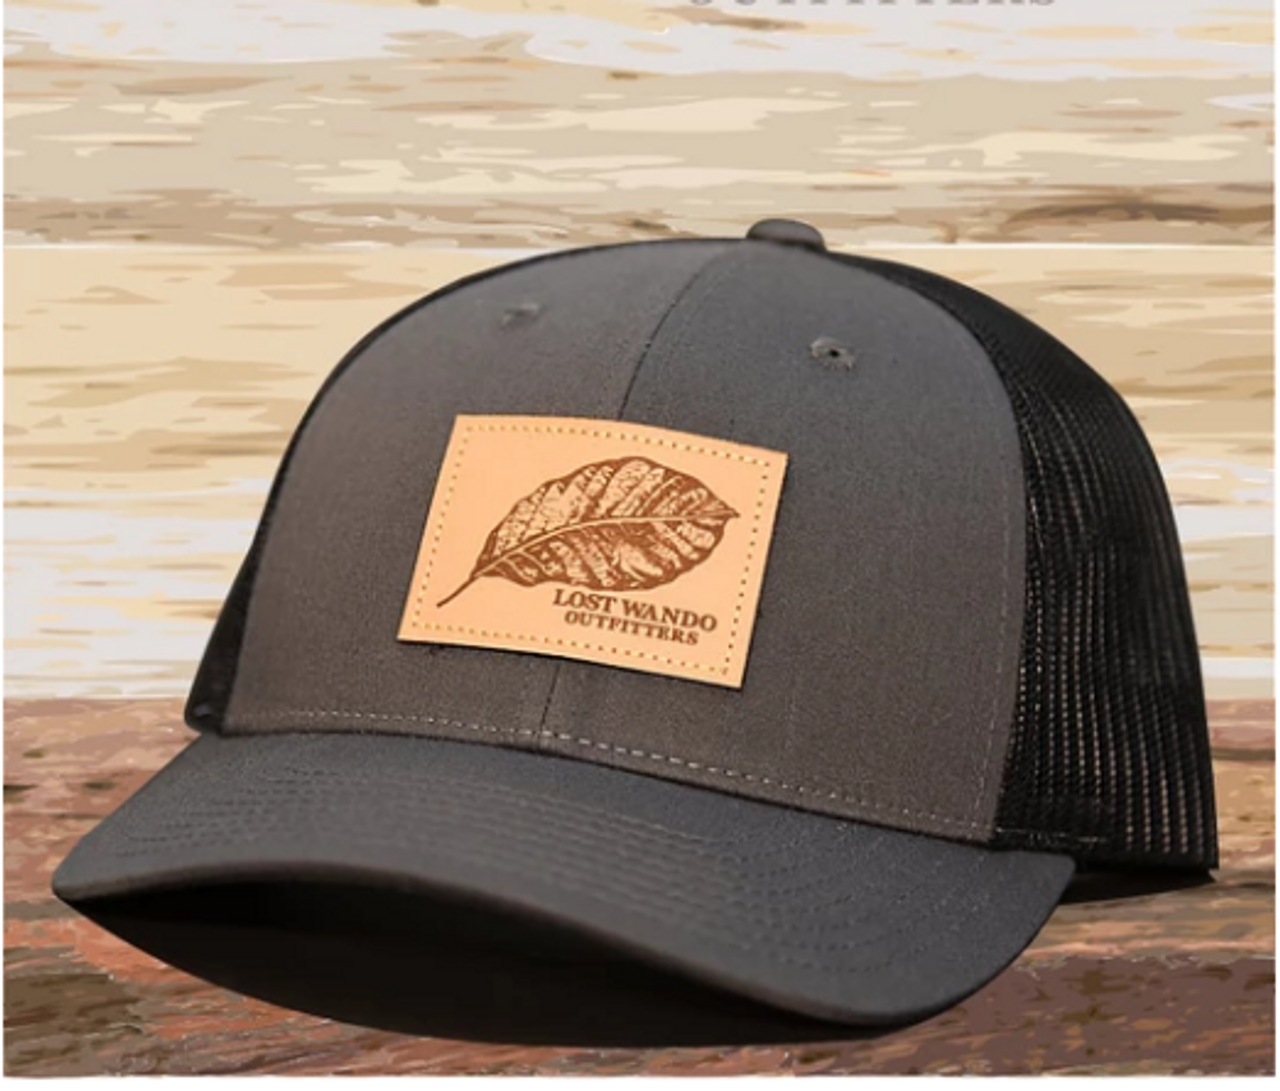 36336a632 Lost Wando Tobacco Leaf Leather Patch Charcoal/Black Hat